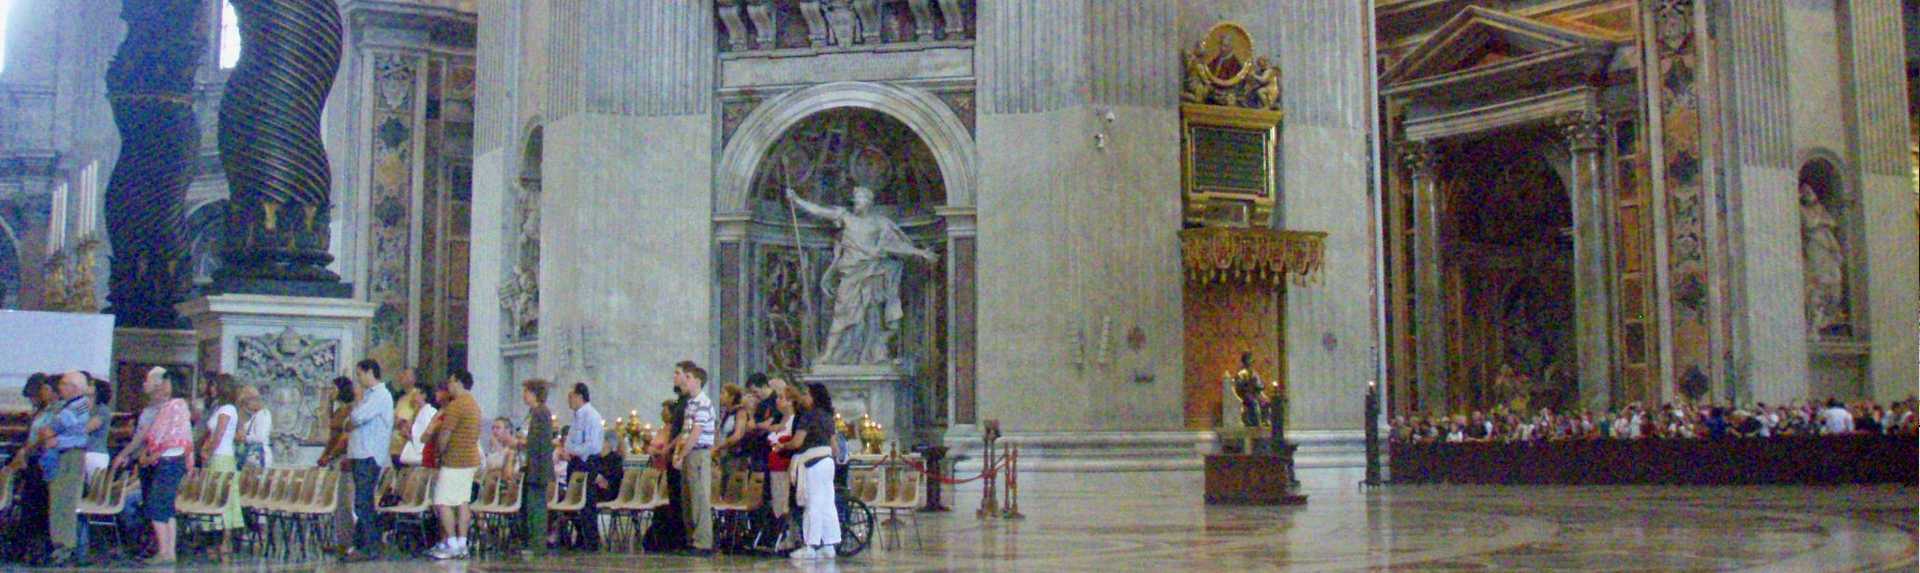 What is the best tour of the Vatican?